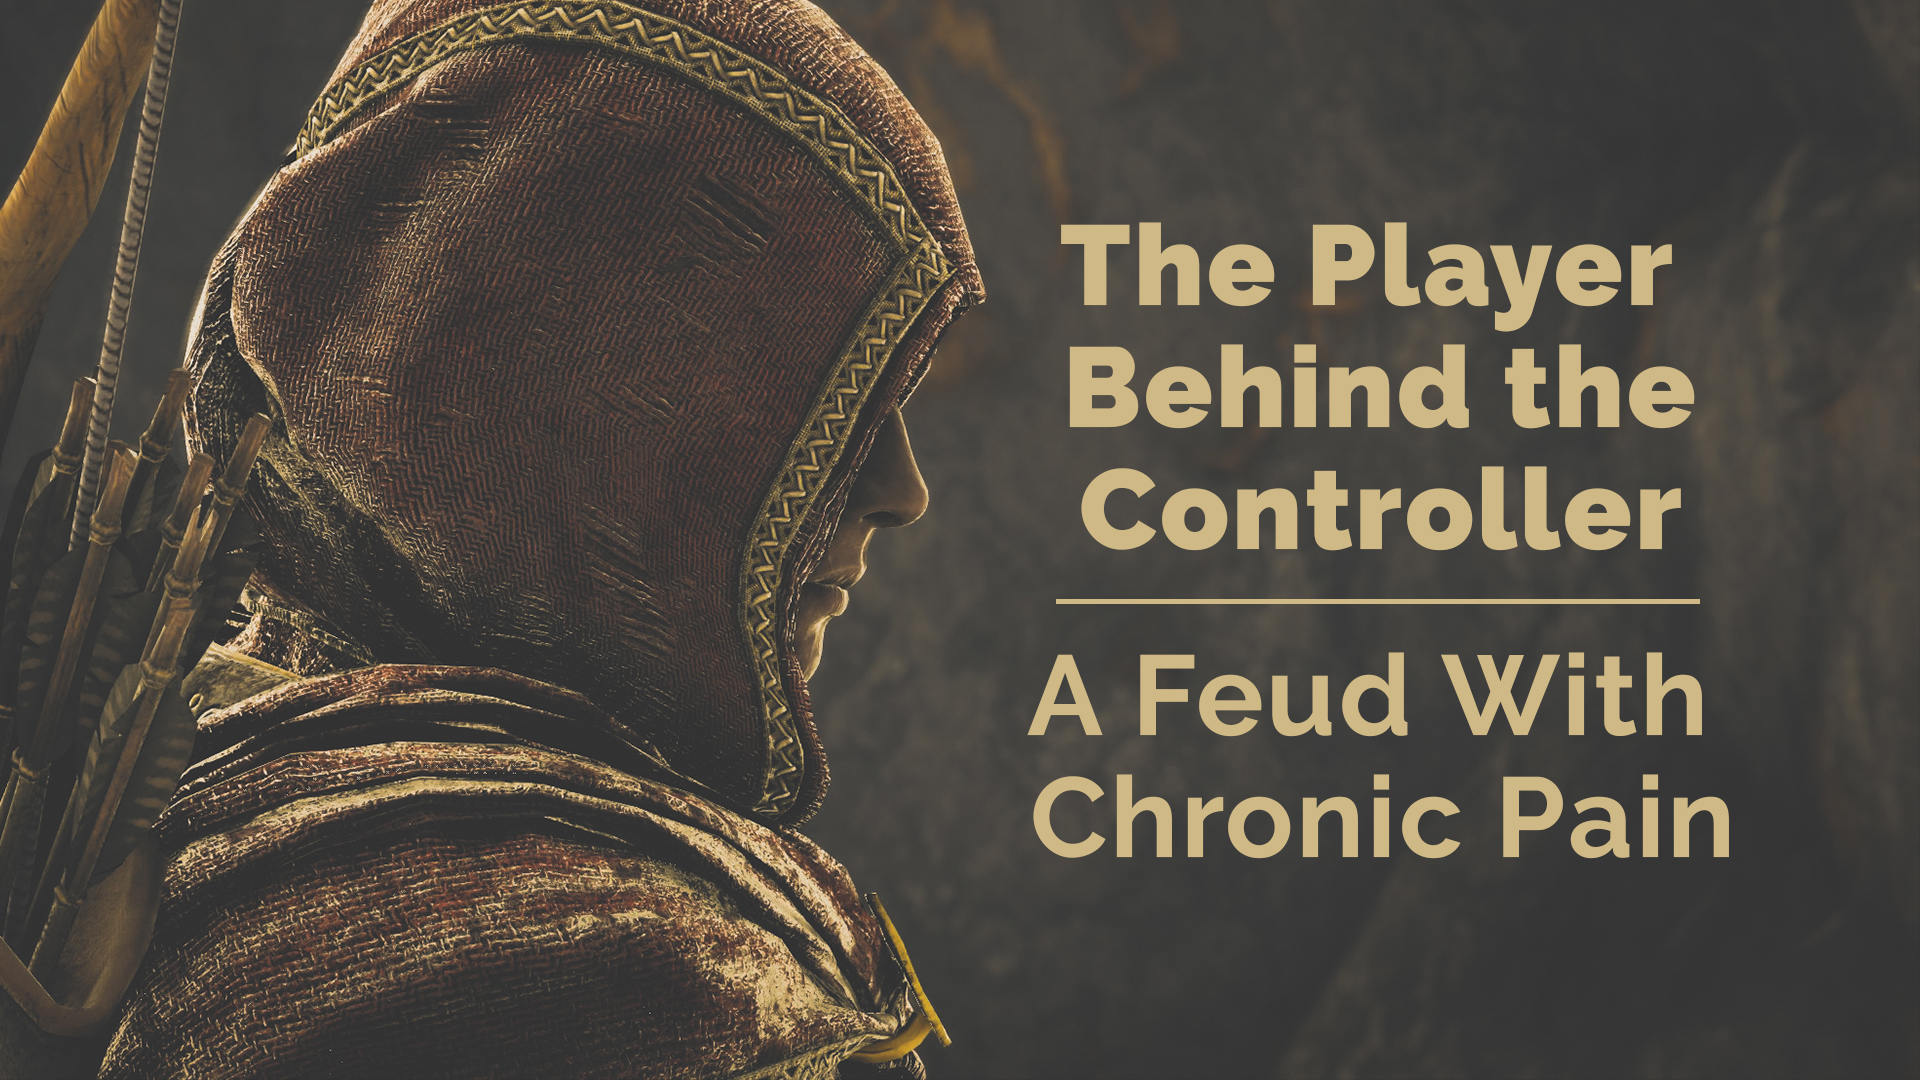 The Player Behind The Controller: A Feud with Chronic Pain